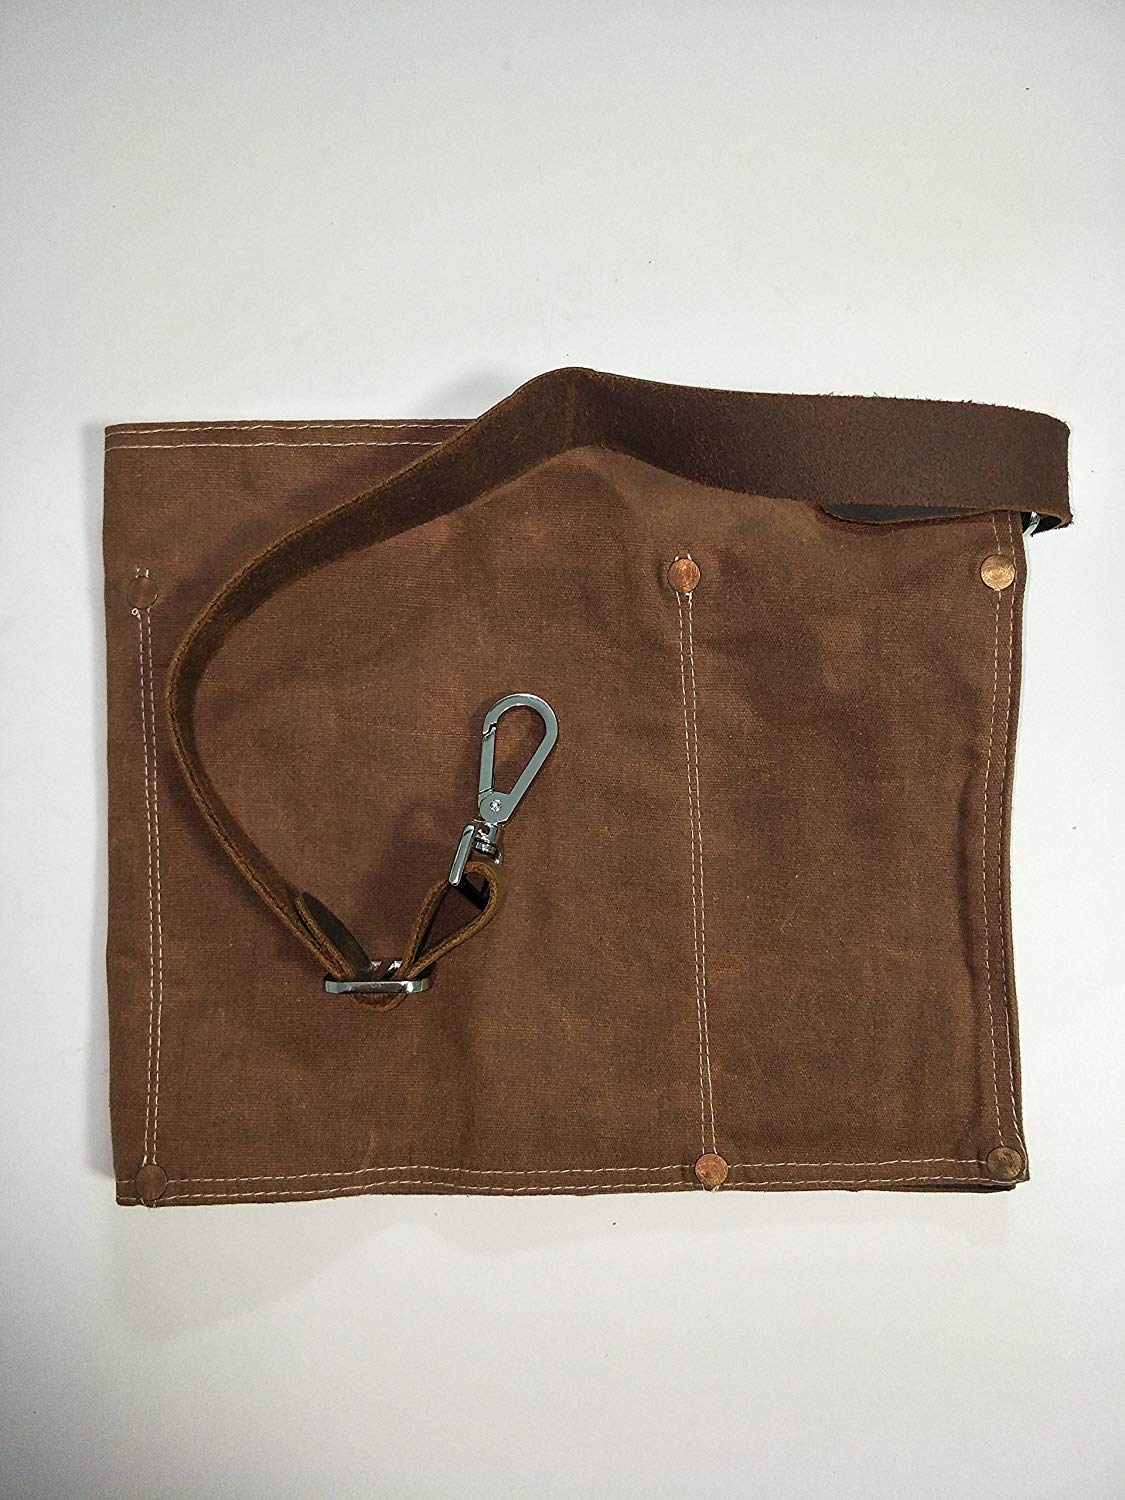 Luchuan Waterproof Waxed Canvas Tool Apron With the Adjustable Genuine Leather Belt (brown)